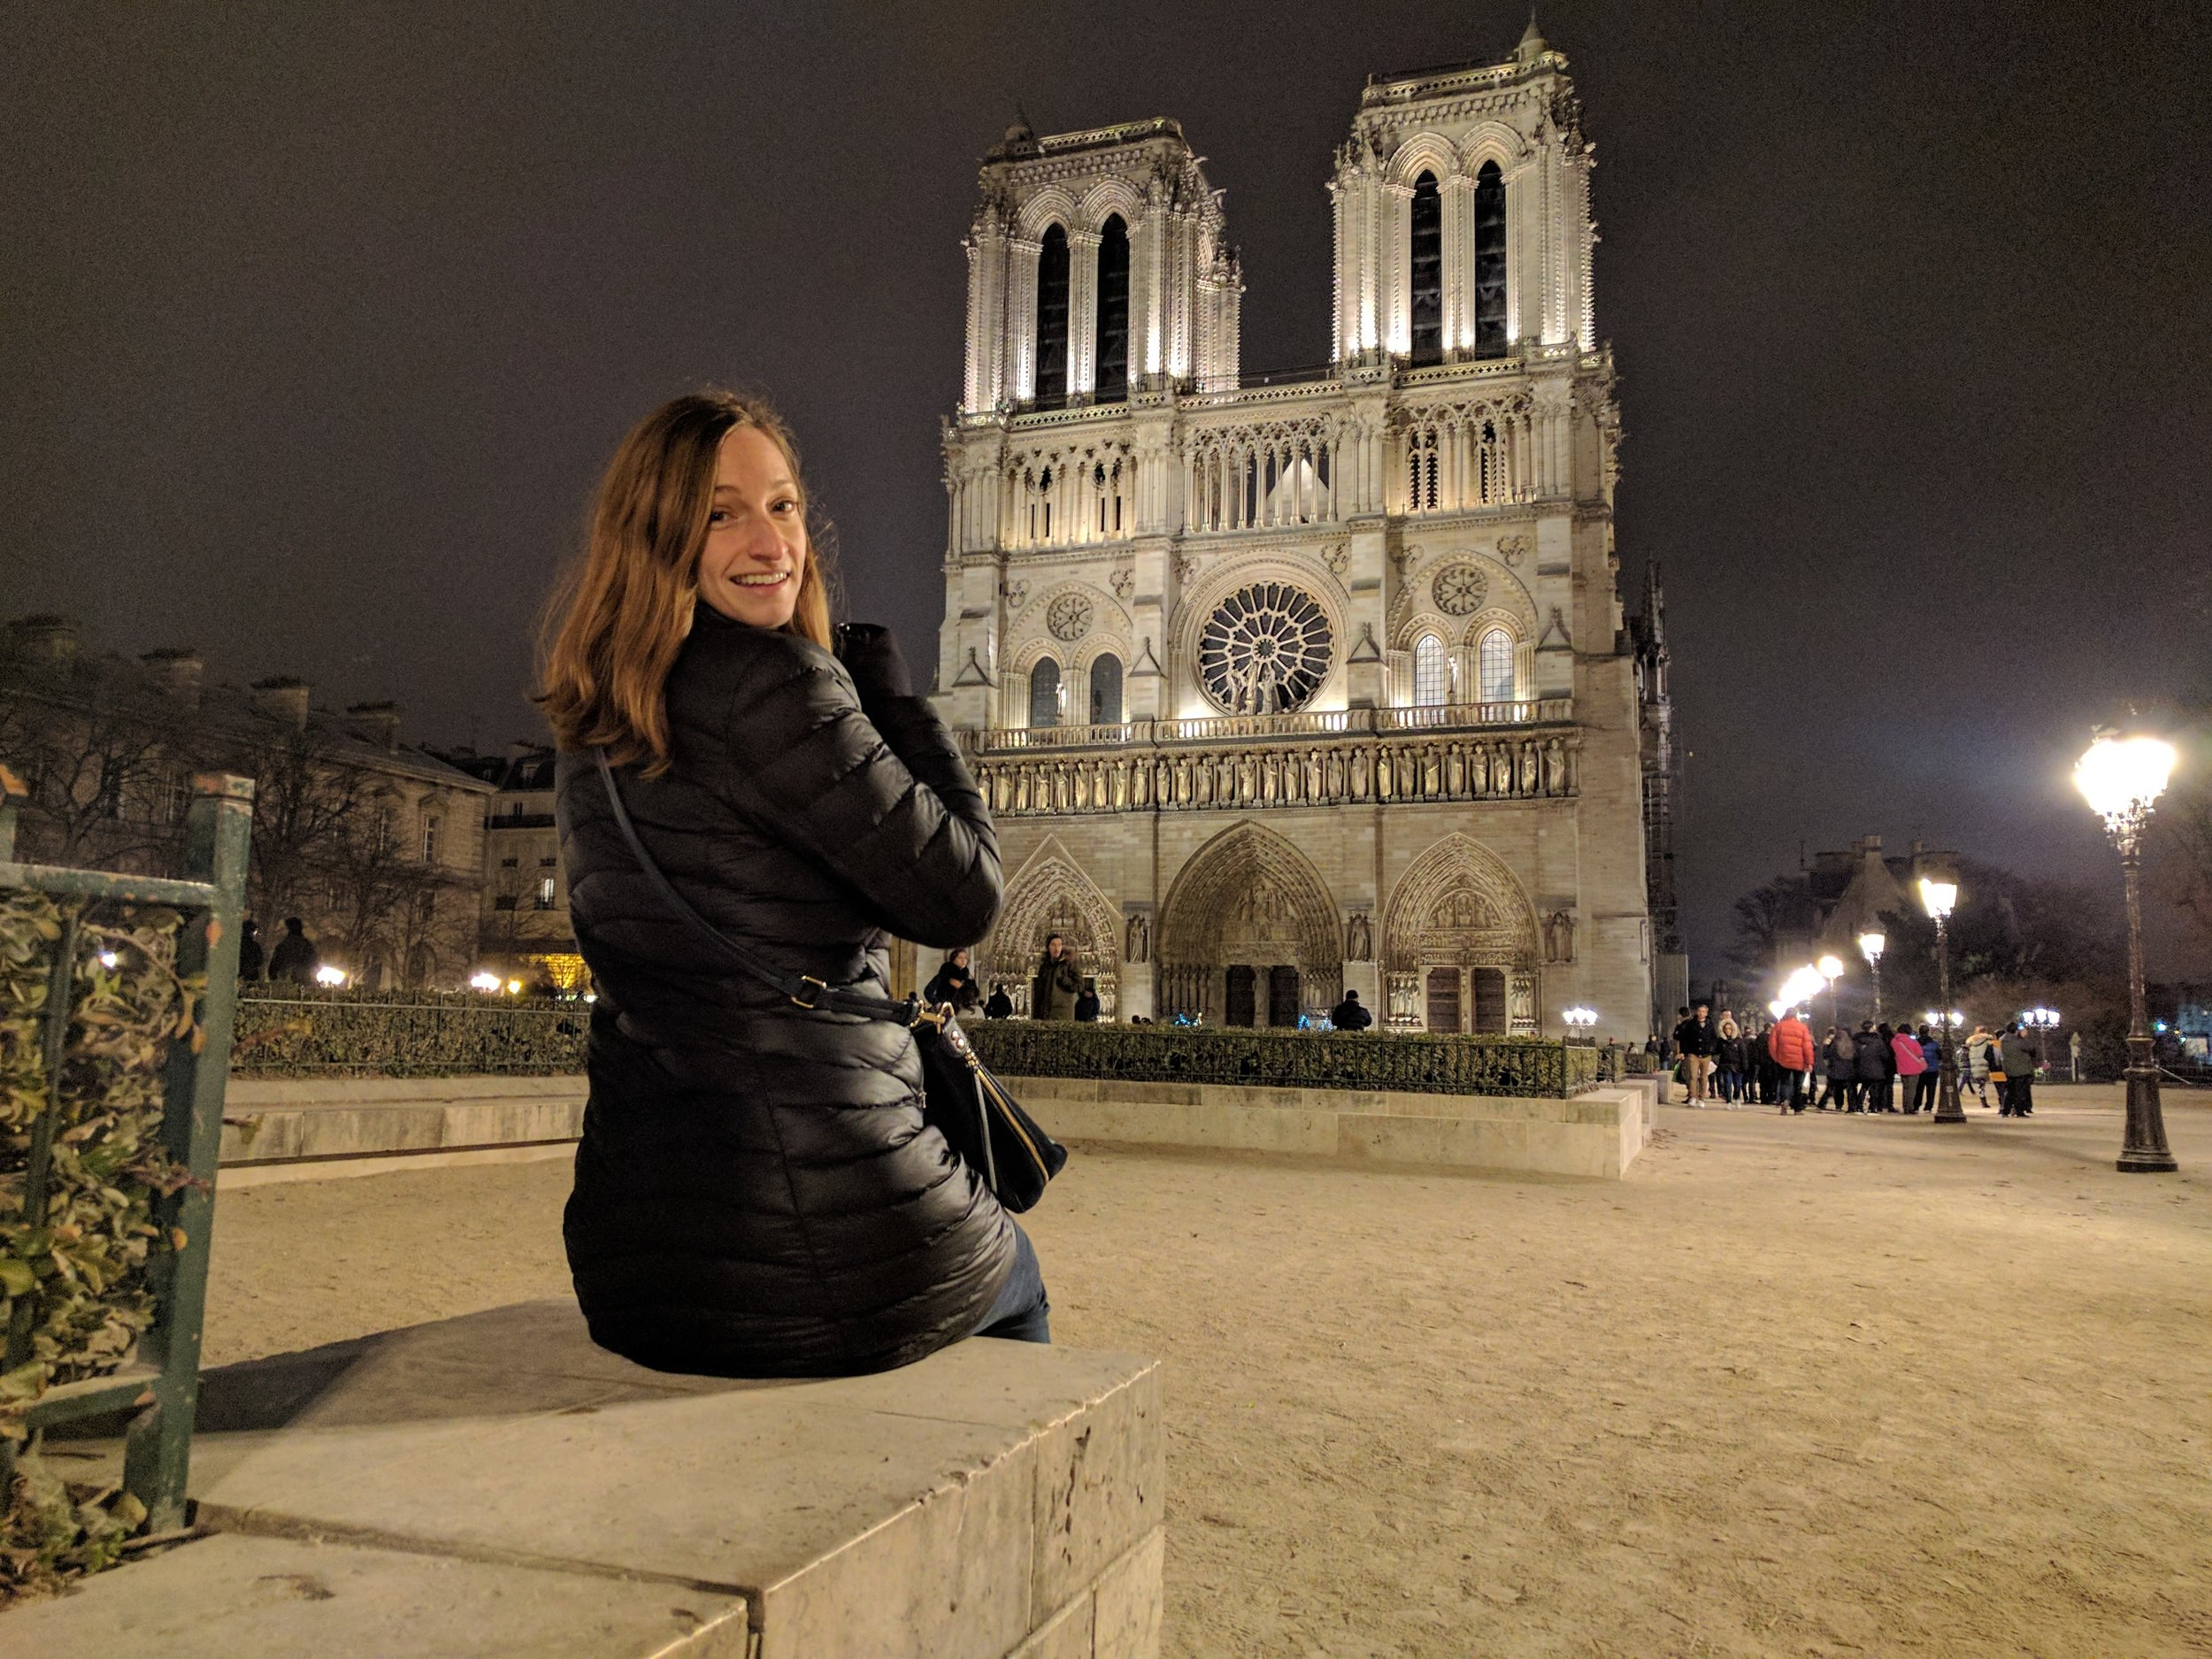 I was happy to have my light patagonia down jacket for December in Paris.